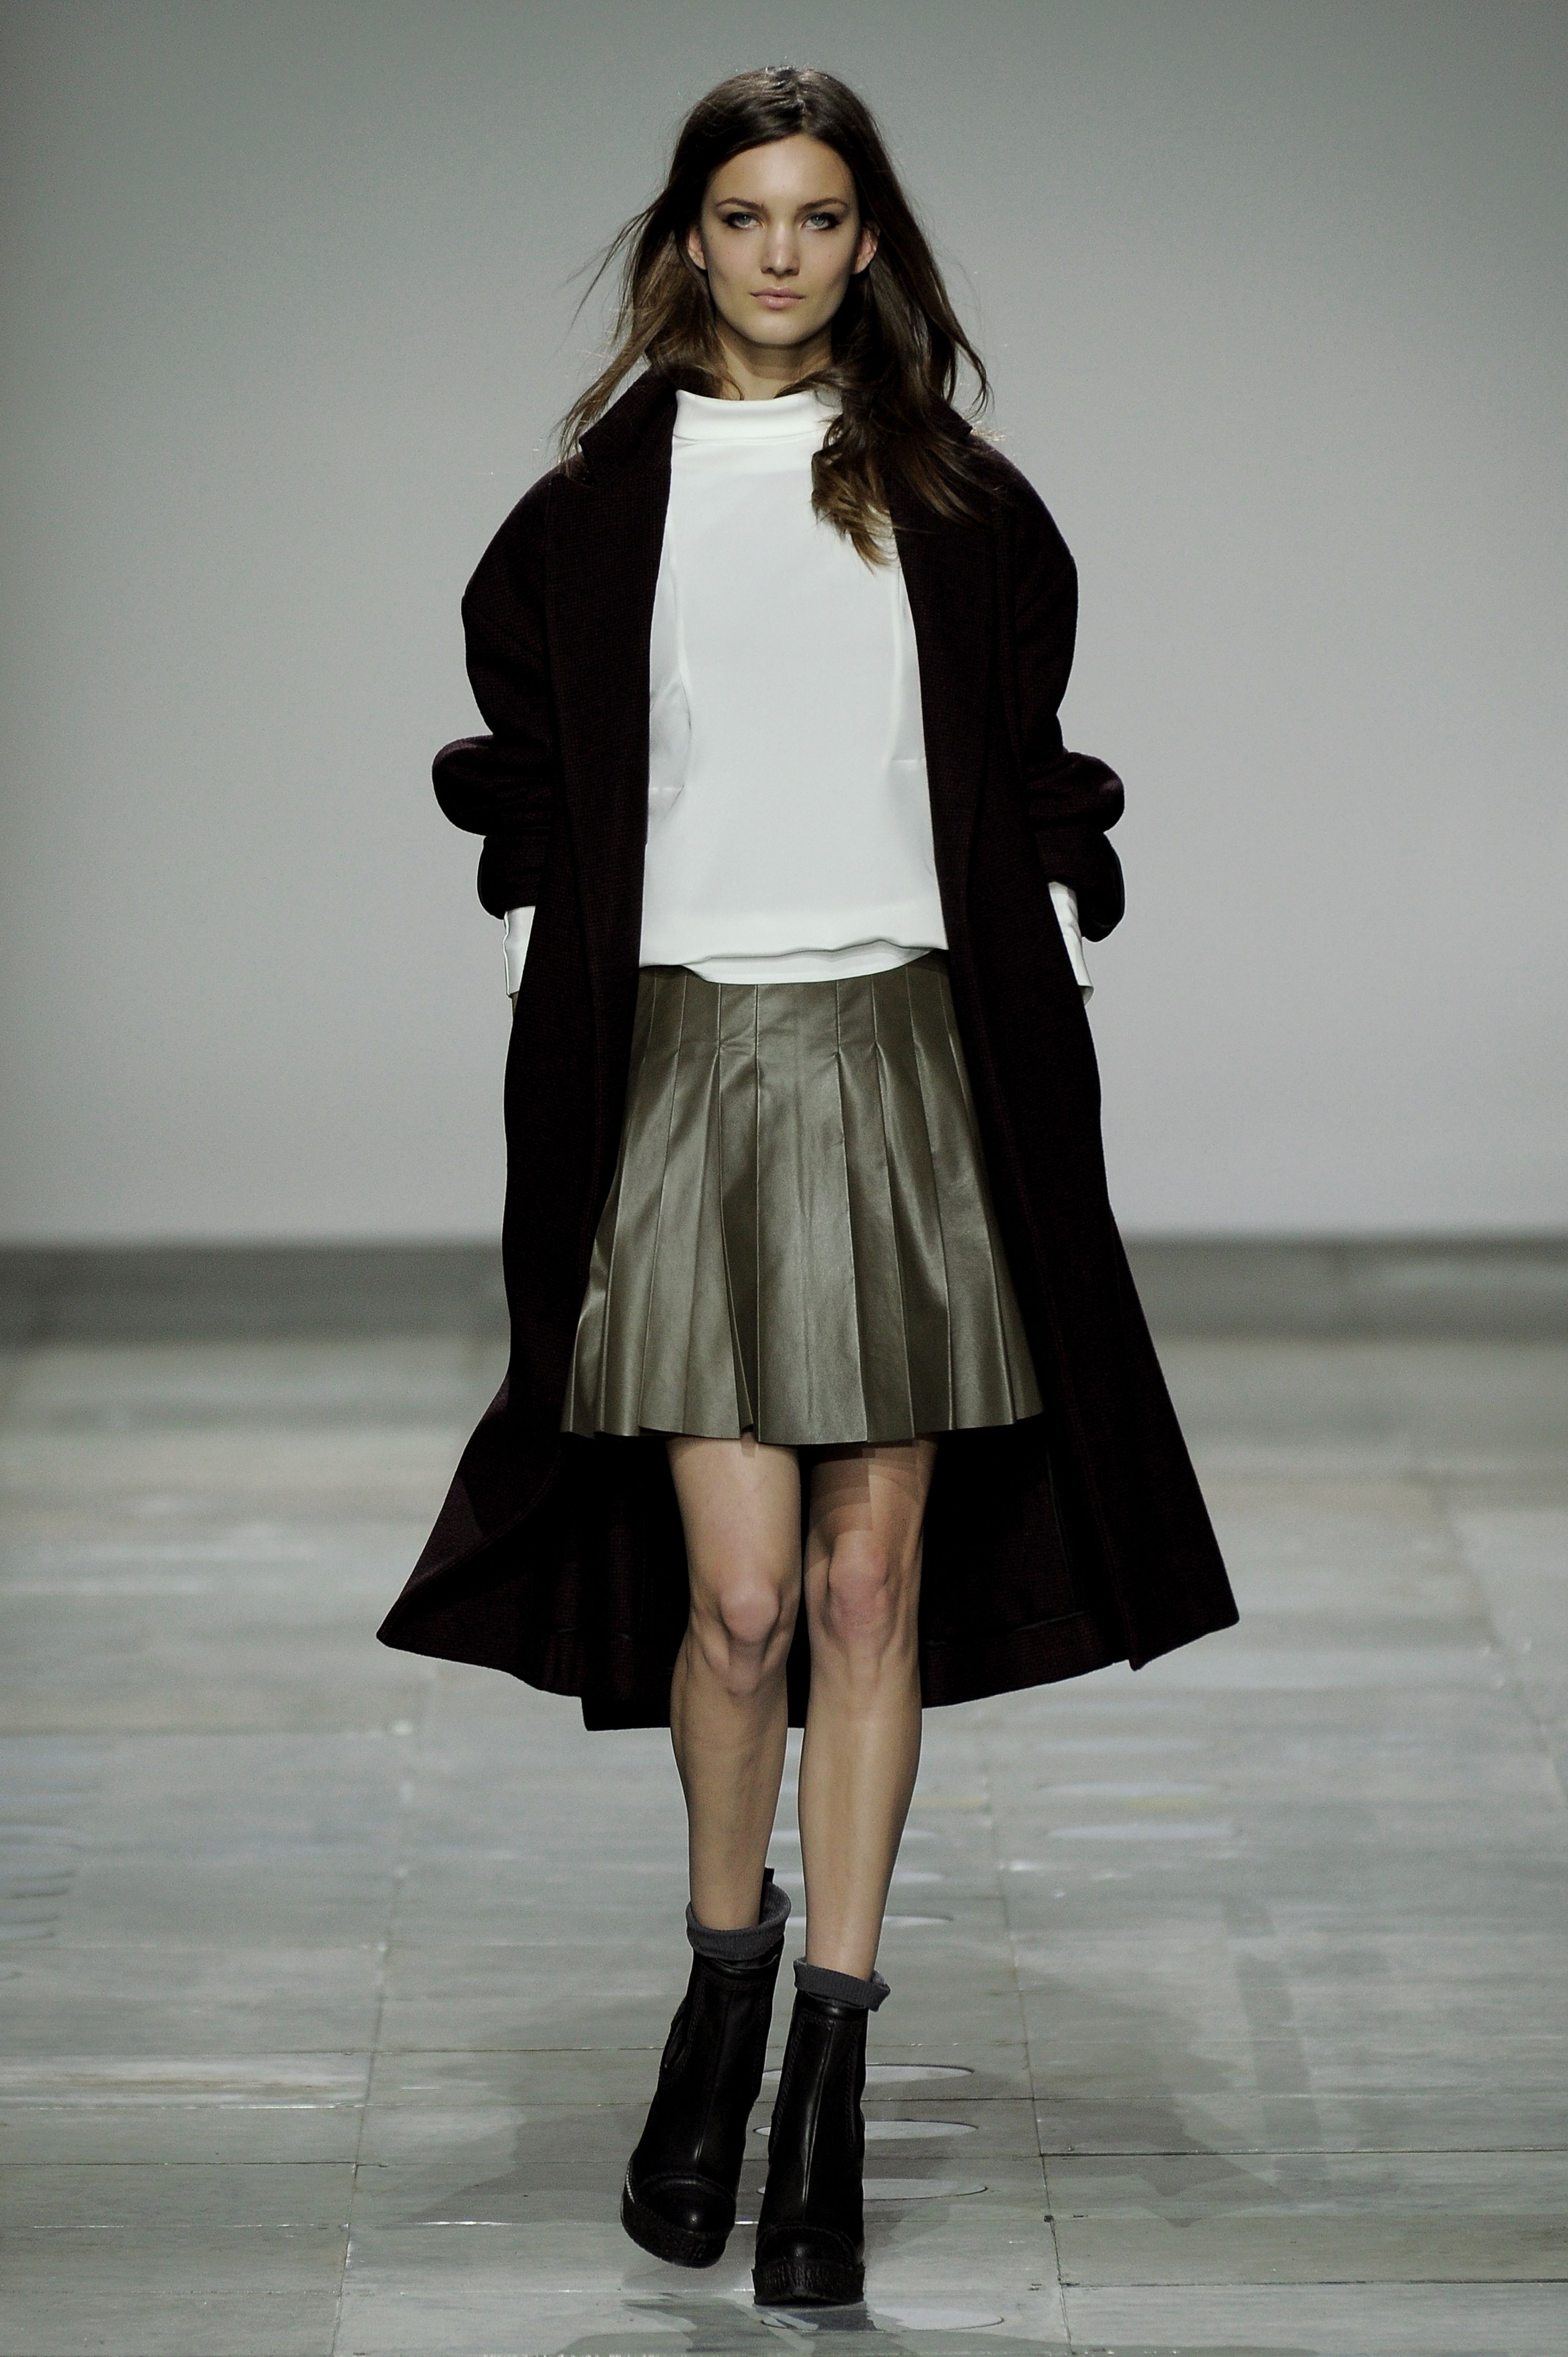 Like what you see? Check out our twitter feed daily to win Unique AW12 pieces!